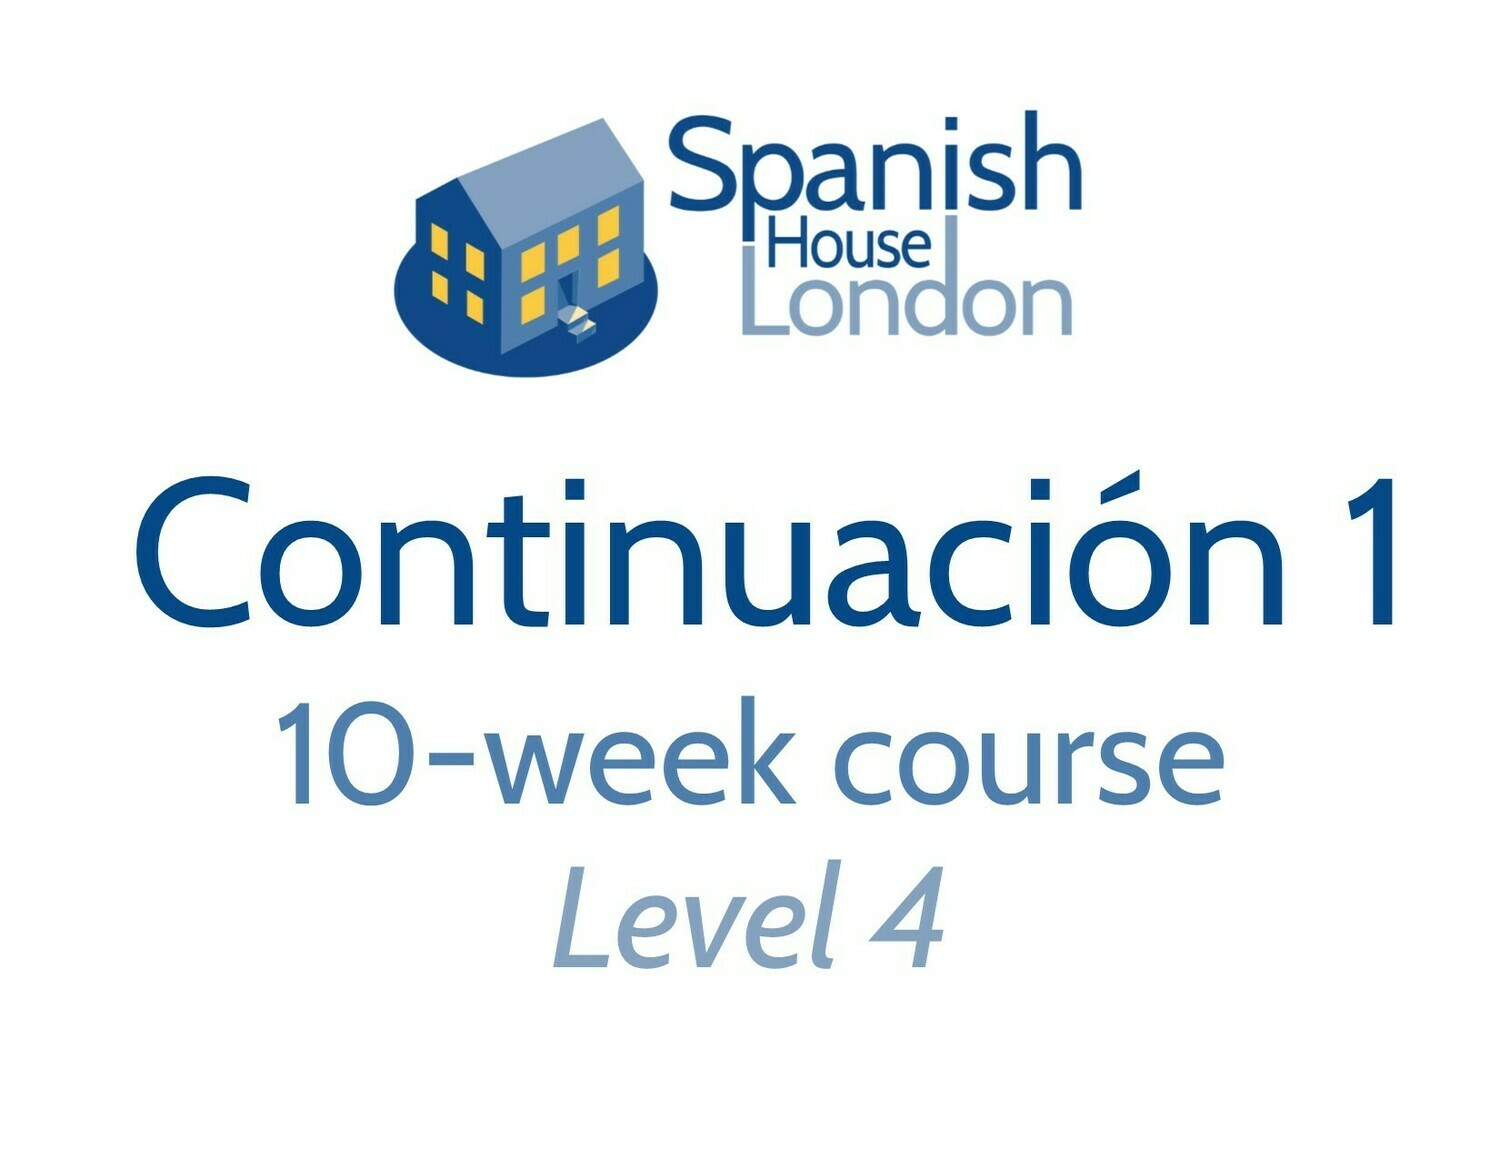 Continuación 1 Course starting on 9th September at 6pm in Canary Wharf